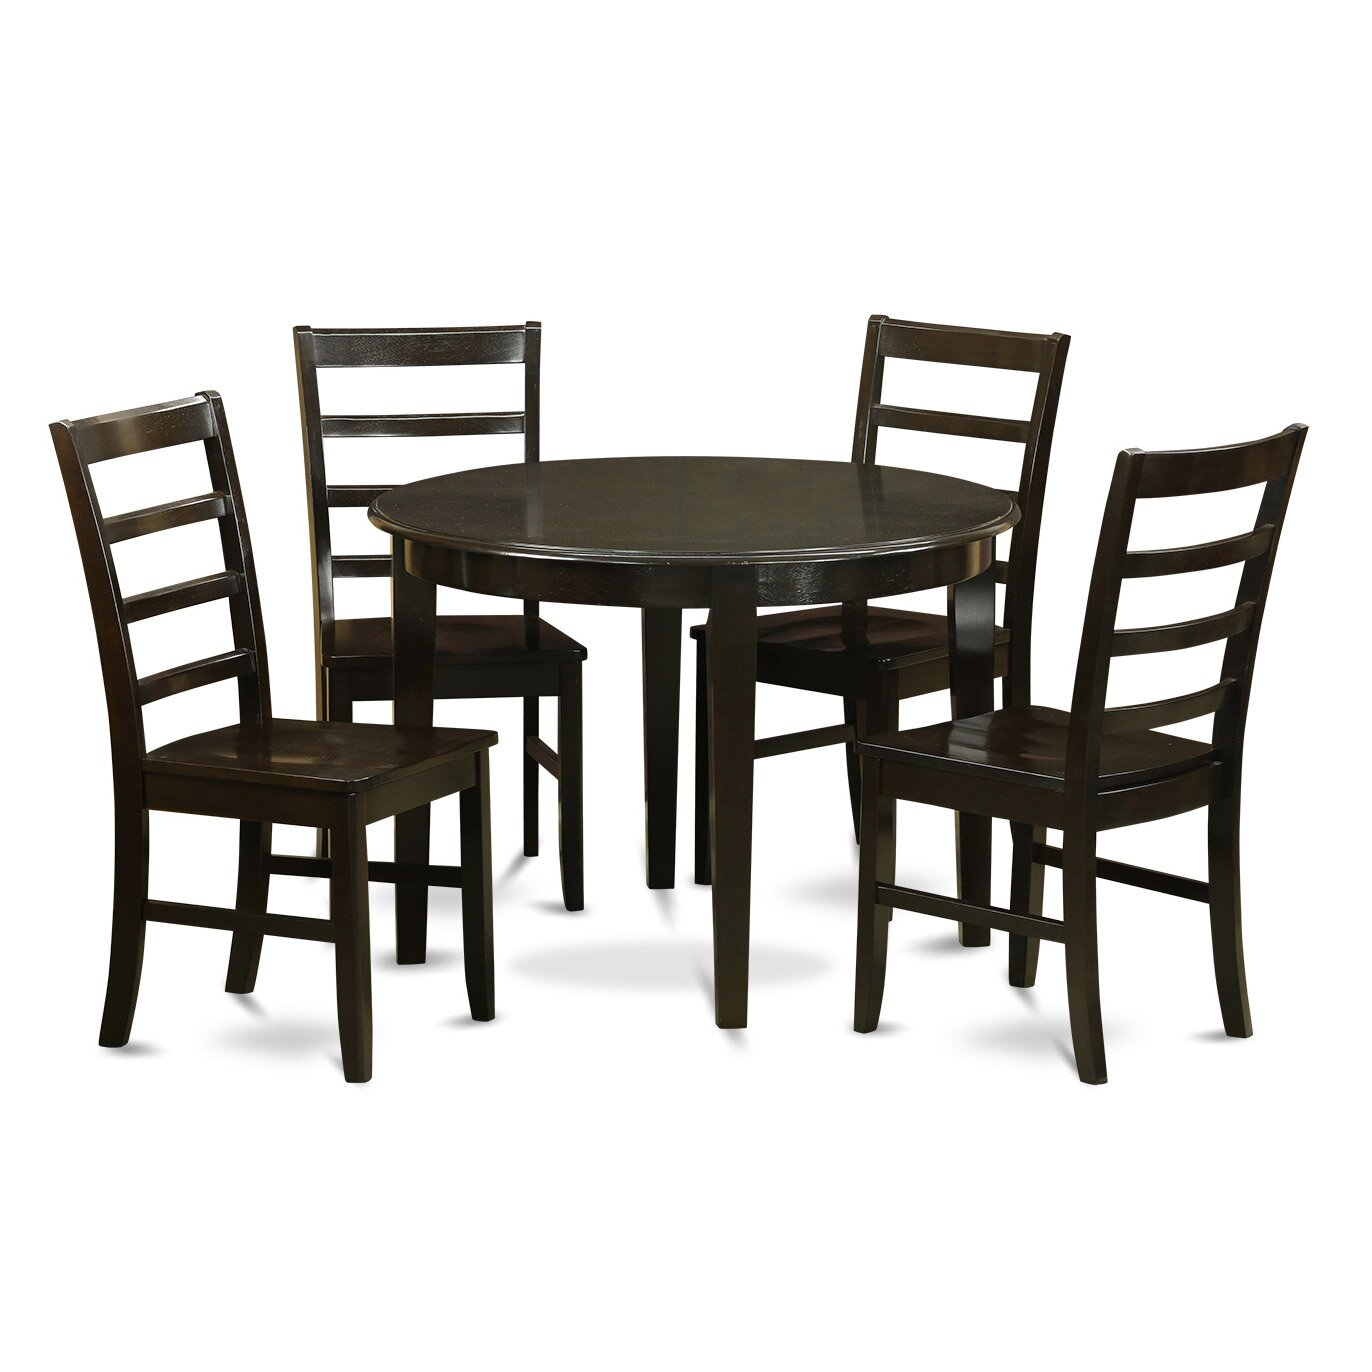 East west boston 5 piece dining set wayfair for Small kitchen table for 4